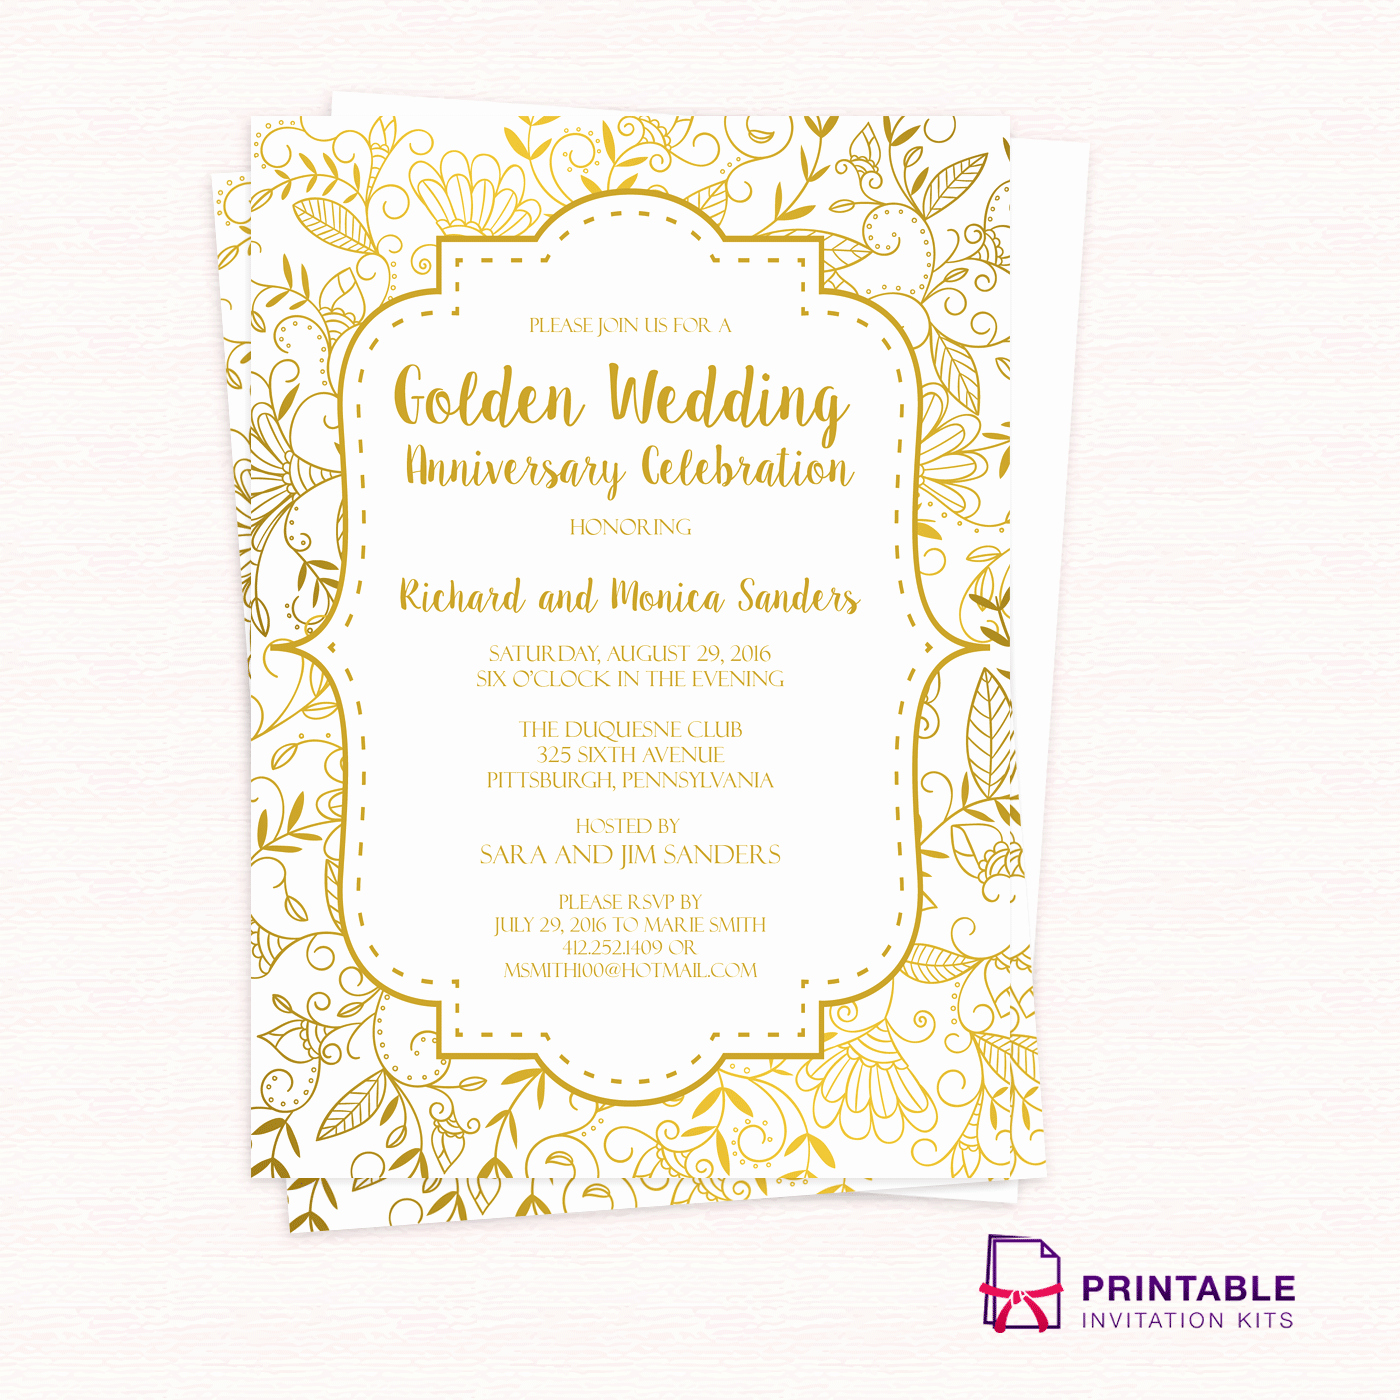 50th Birthday Invitation Templates Word Luxury Golden Wedding Anniversary Invitation Template